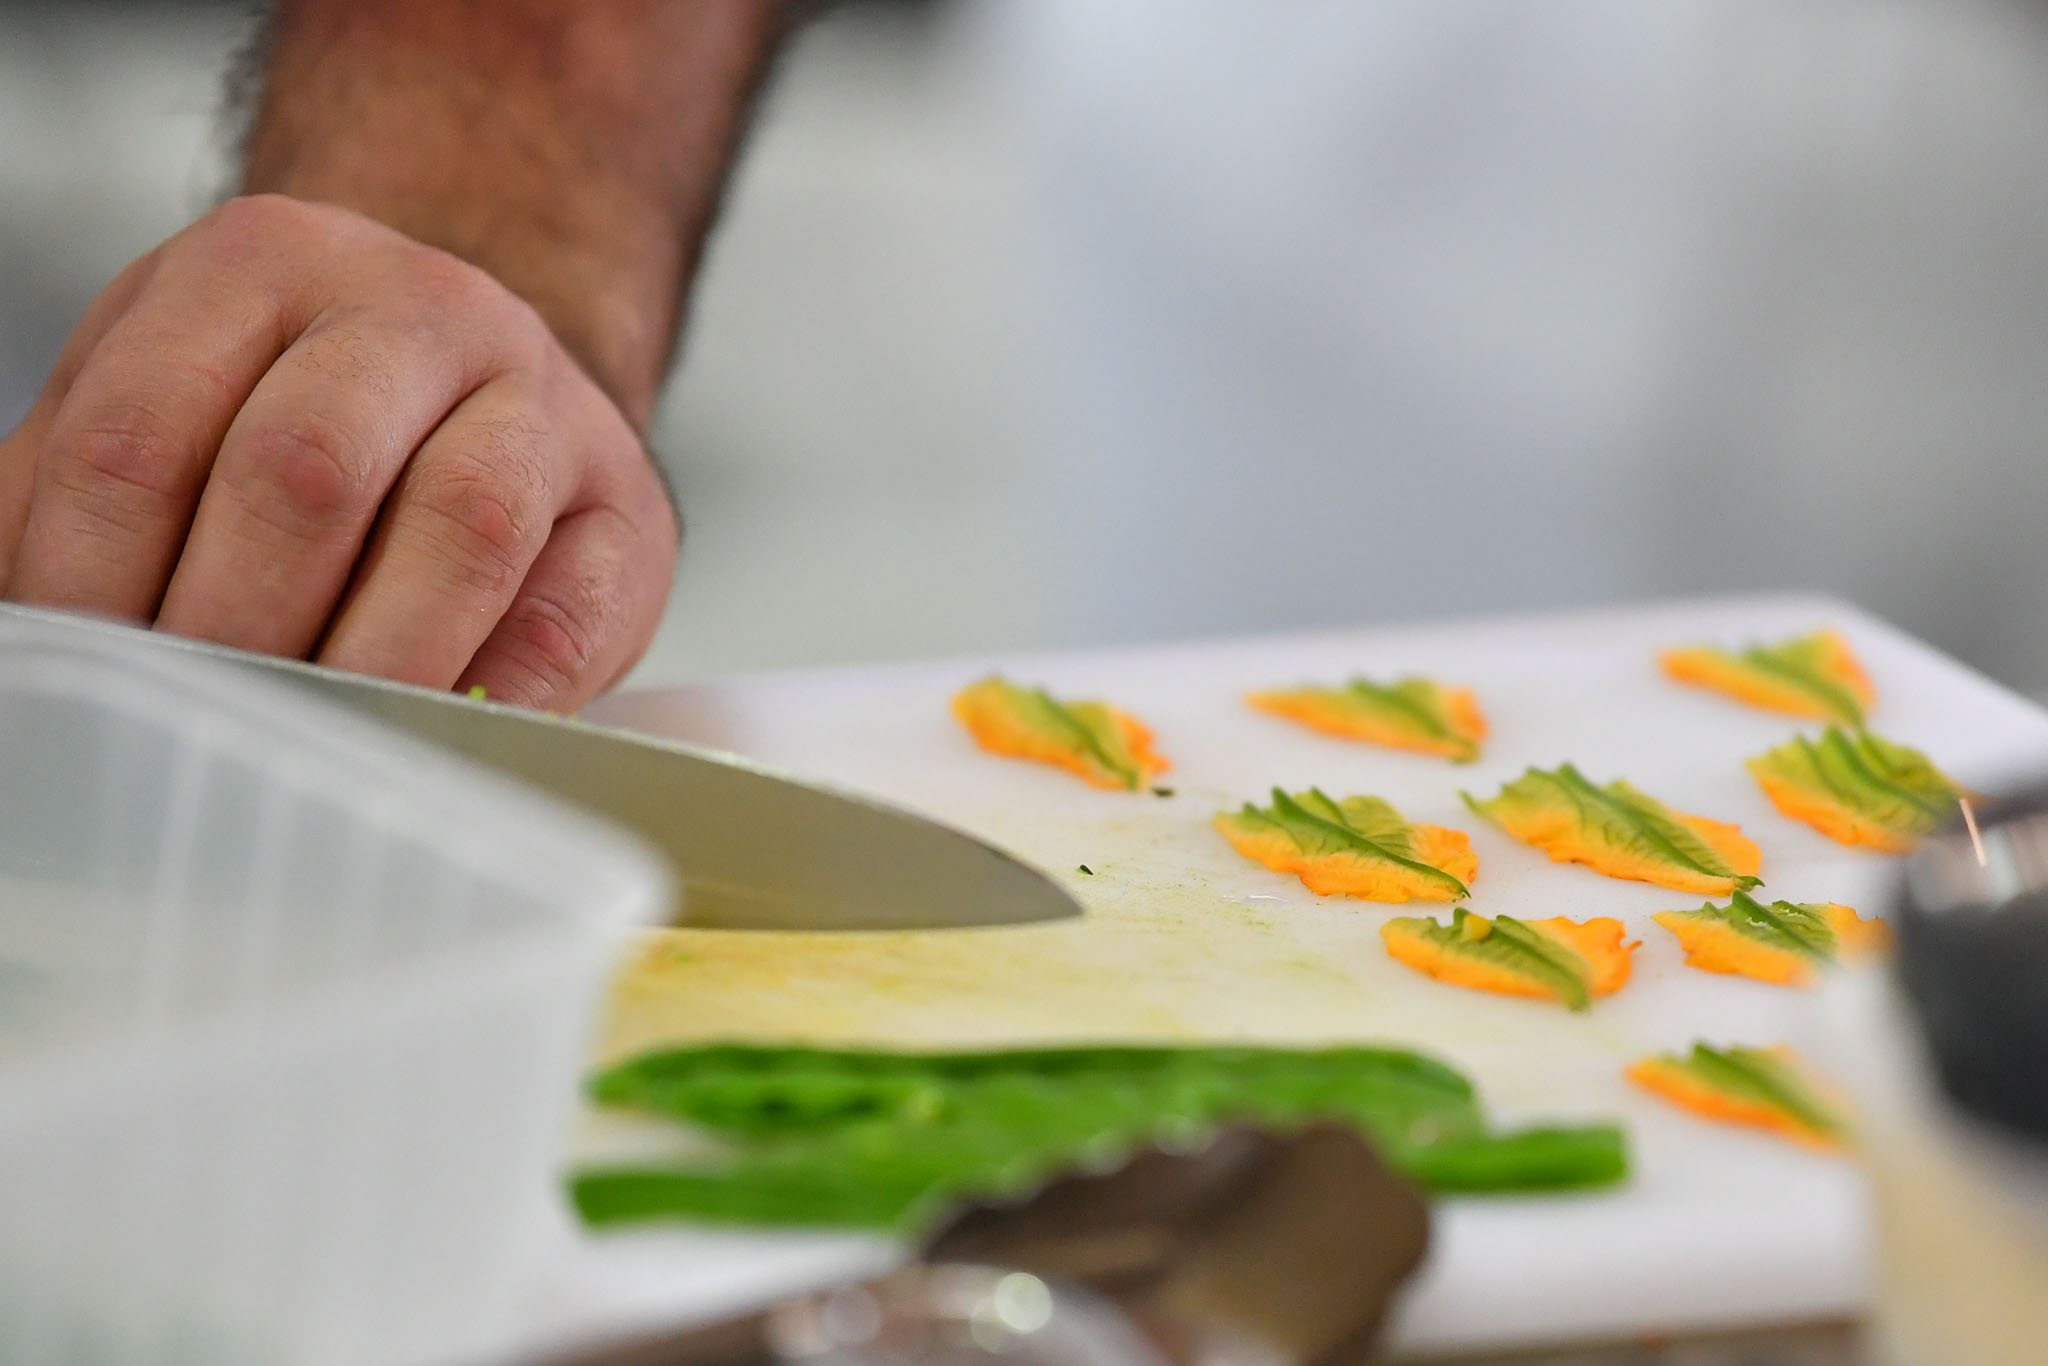 Melbourne, 30 May 2017 - Daniel Soto of the Montague Hotel in South Melbourne prepares a garnish at the Australian selection trials of the Bocuse d'Or culinary competition held during the Food Service Australia show at the Royal Exhibition Building in Melbourne, Australia. Photo Sydney Low